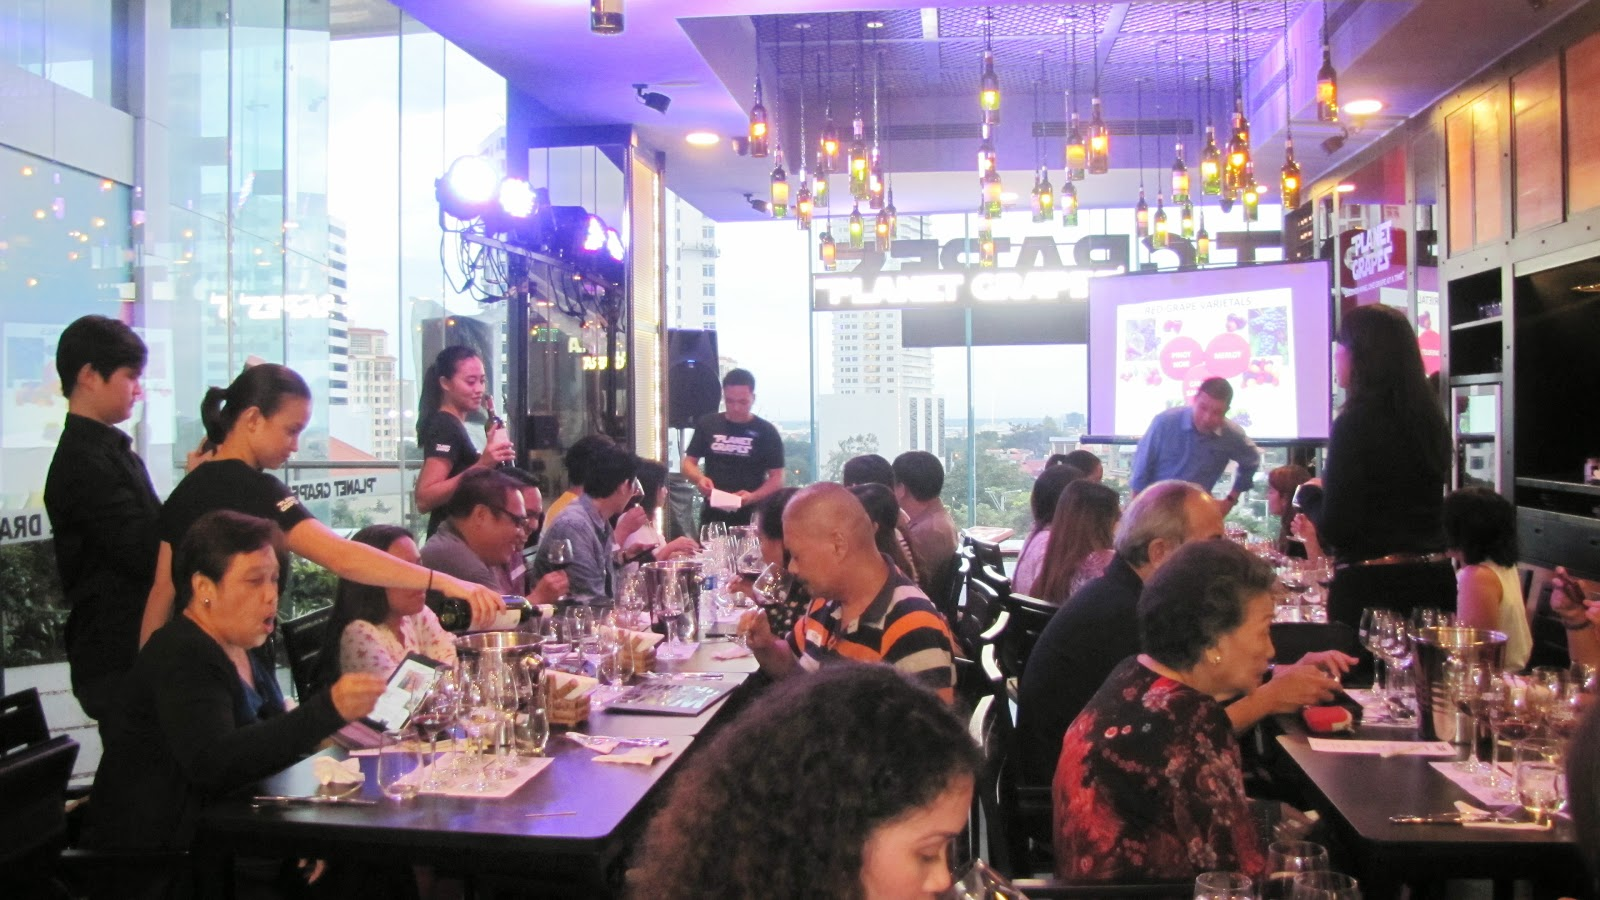 FTW! Blog, Planet Grapes Cebu, #032eatdrink, media launch